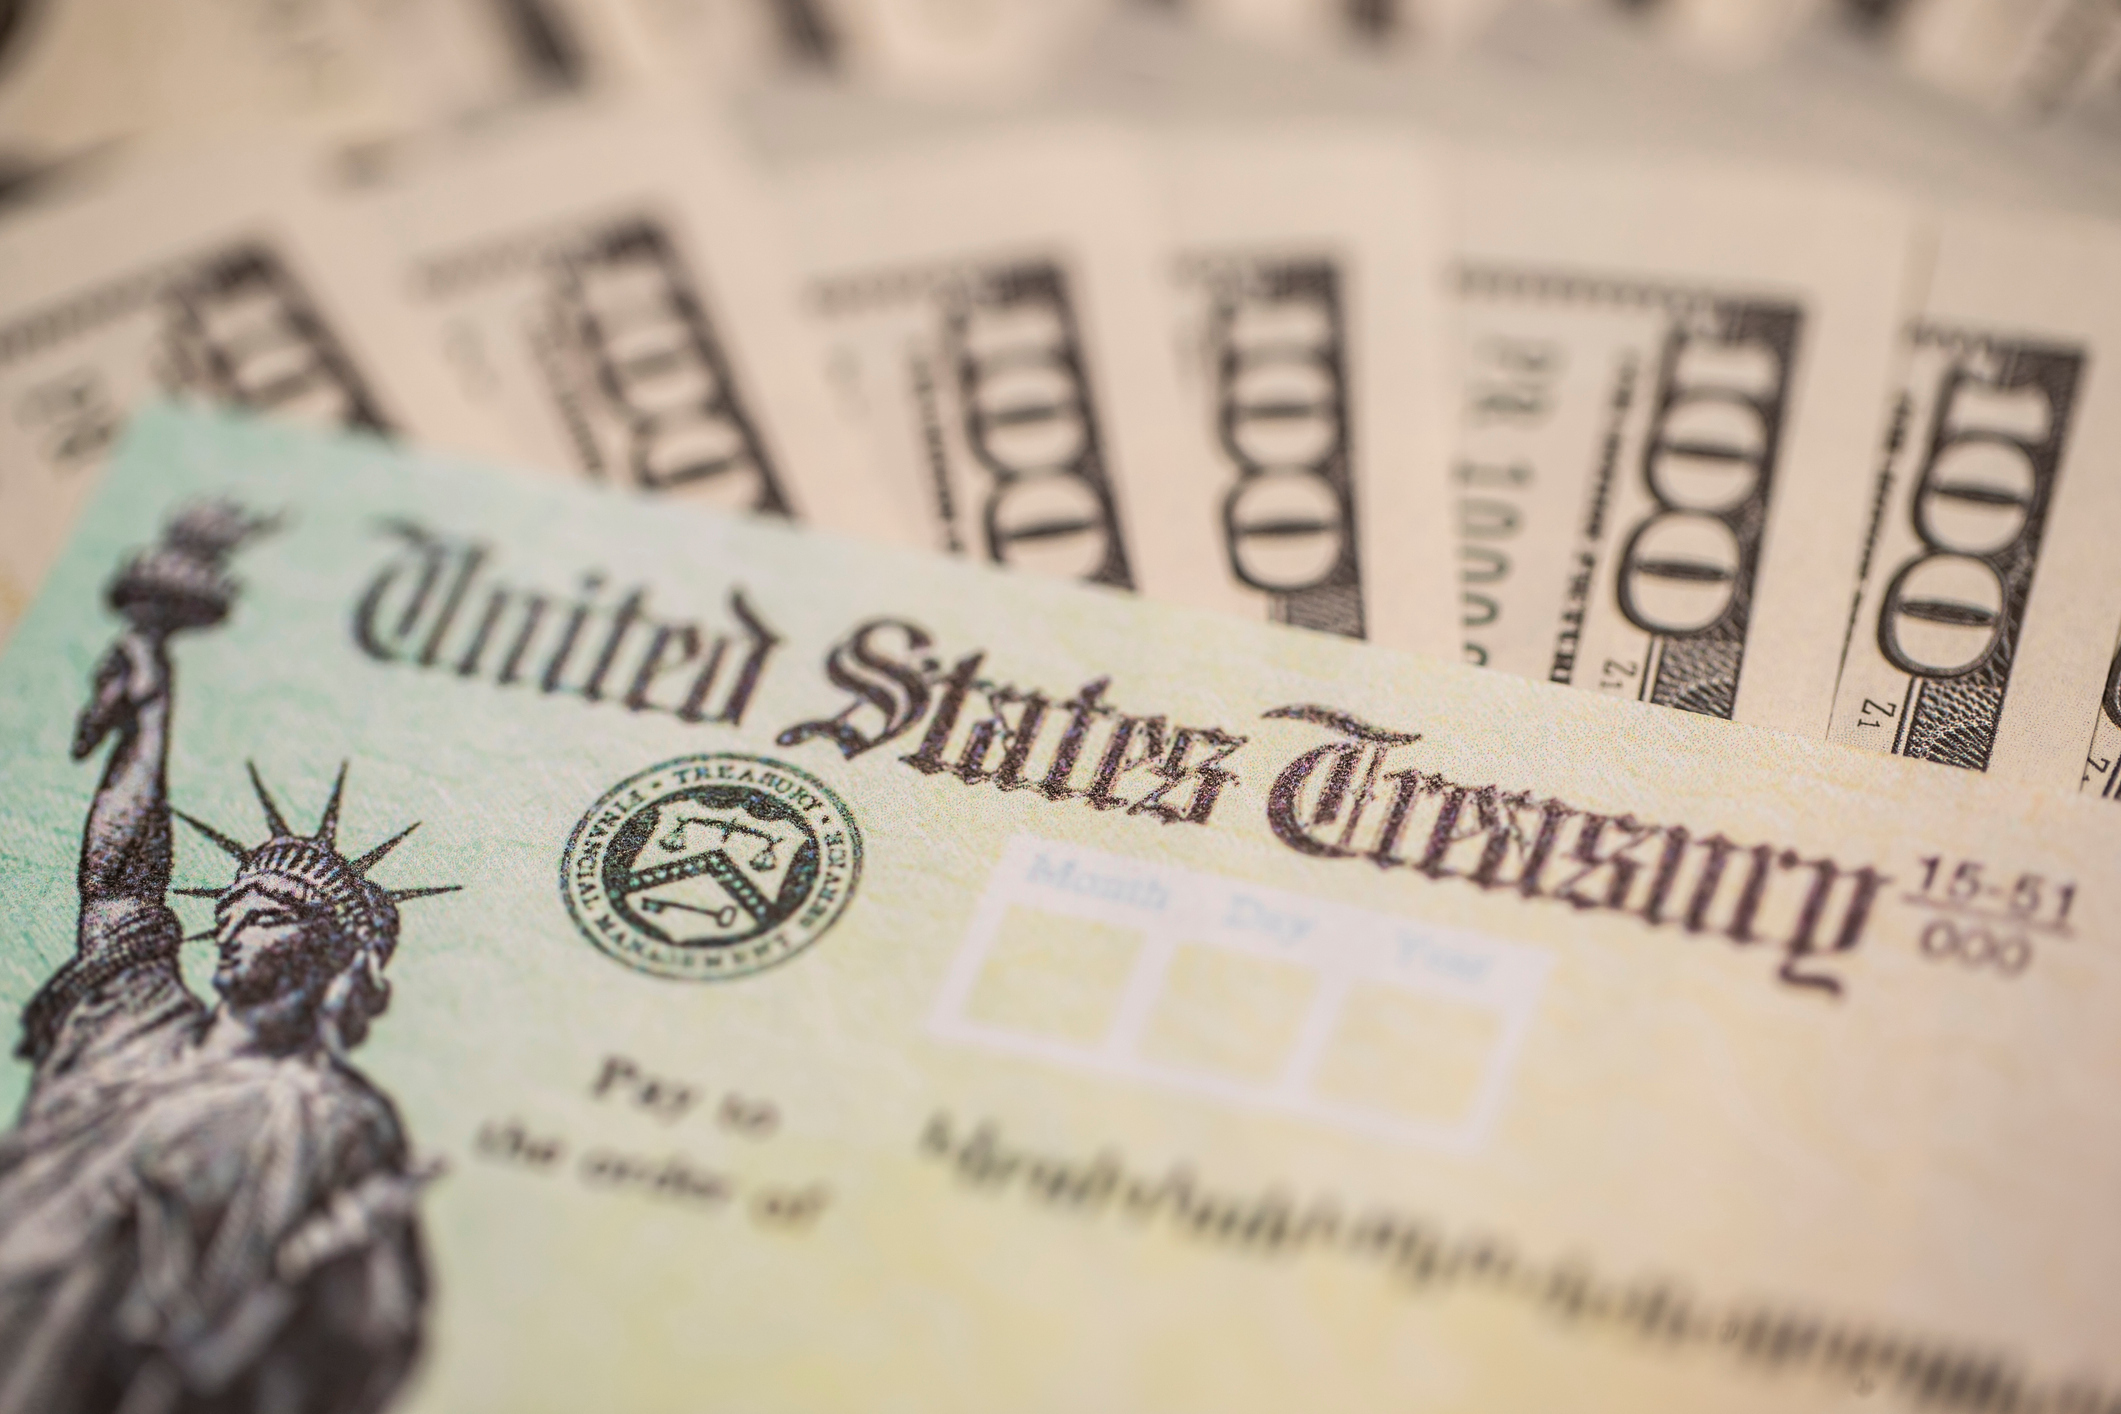 Stimulus Checks to be extended to adult dependents including college students